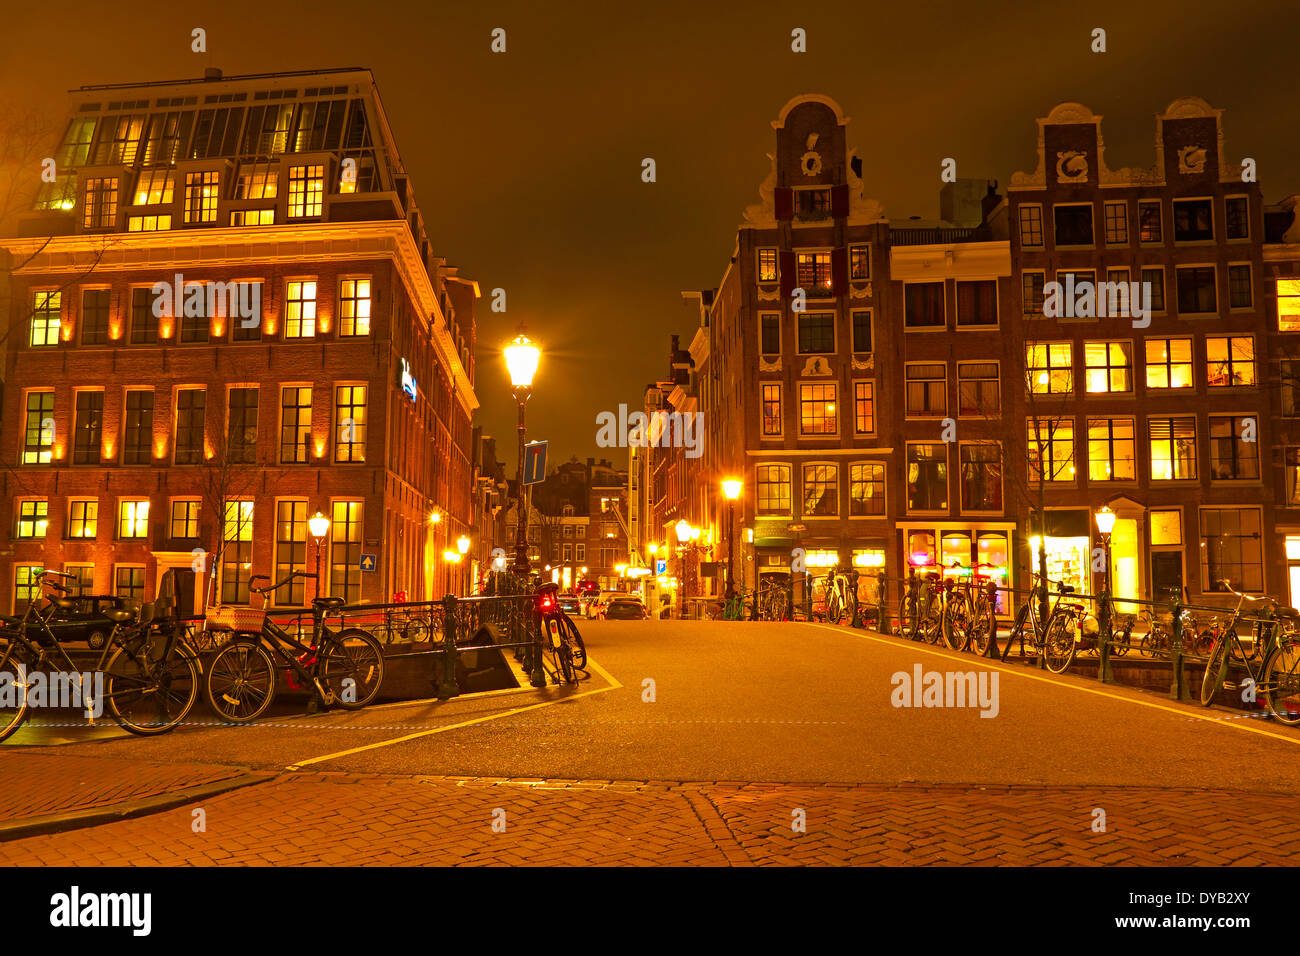 Streetview from Amsterdam in the Netherlands at night Stock Photo